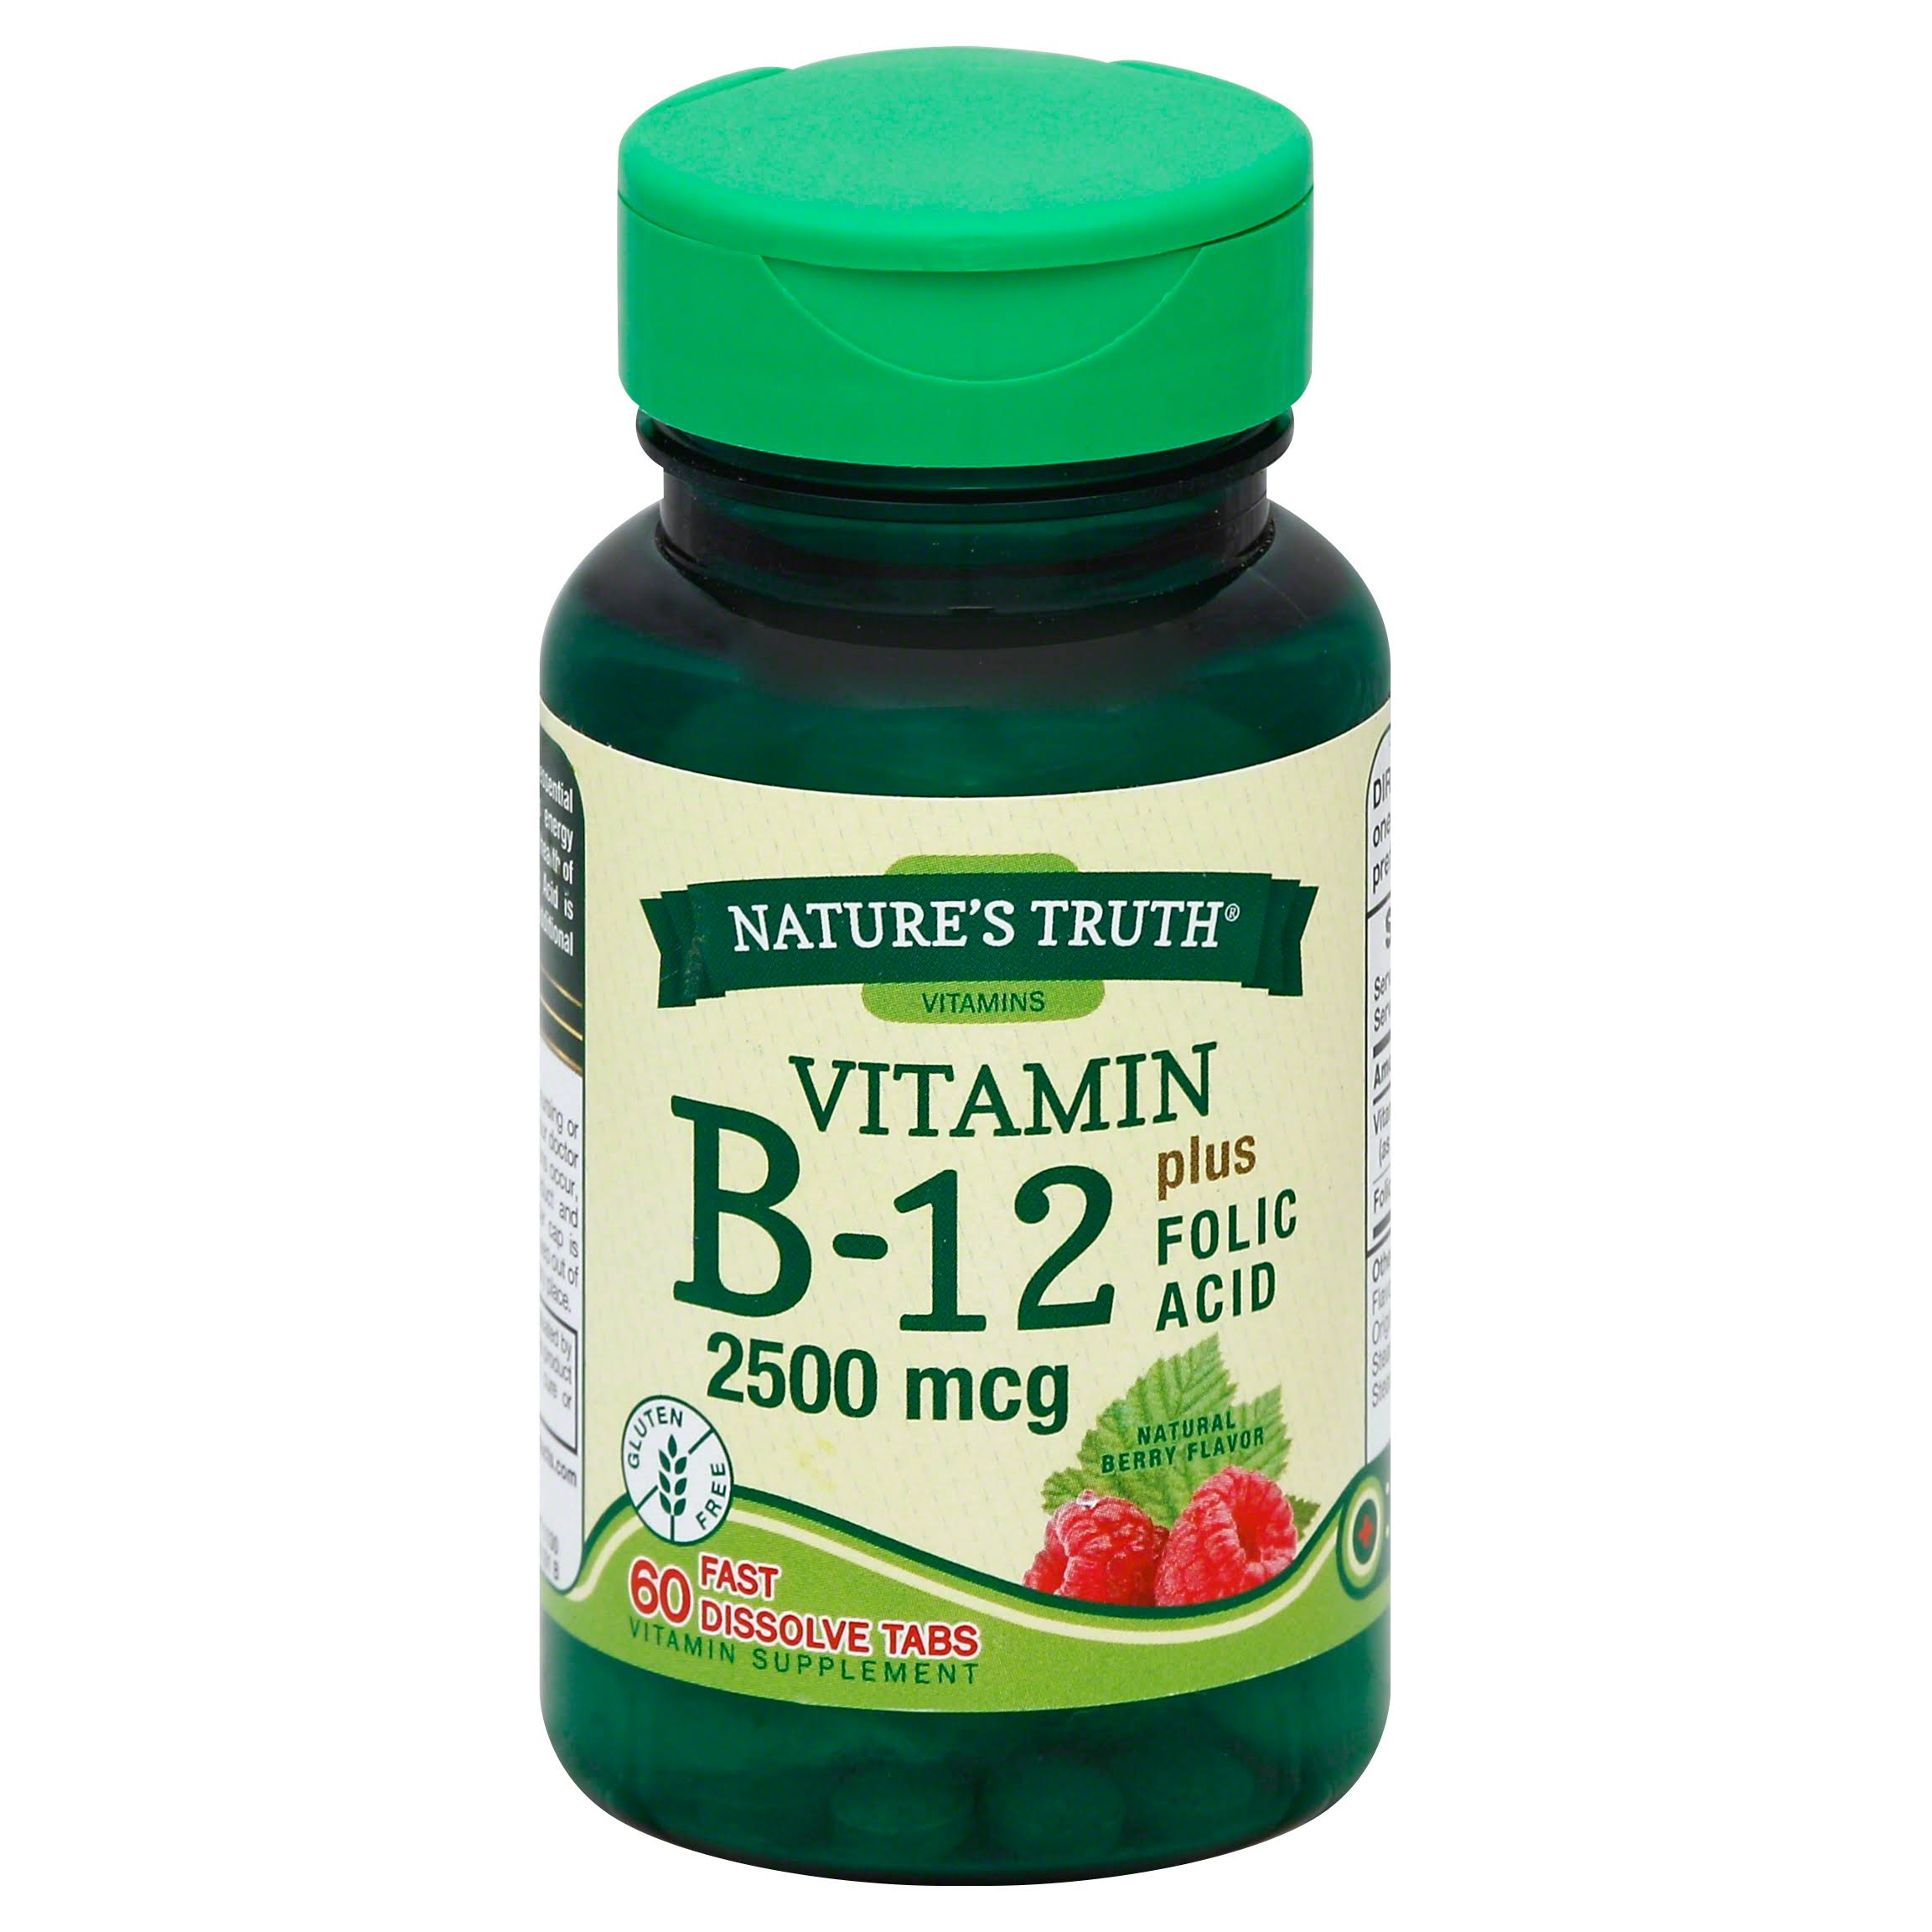 Nature's Truth 2500mcg Vitamin B-12 Plus Folic Acid - Berry Flavour, 60 Tabs